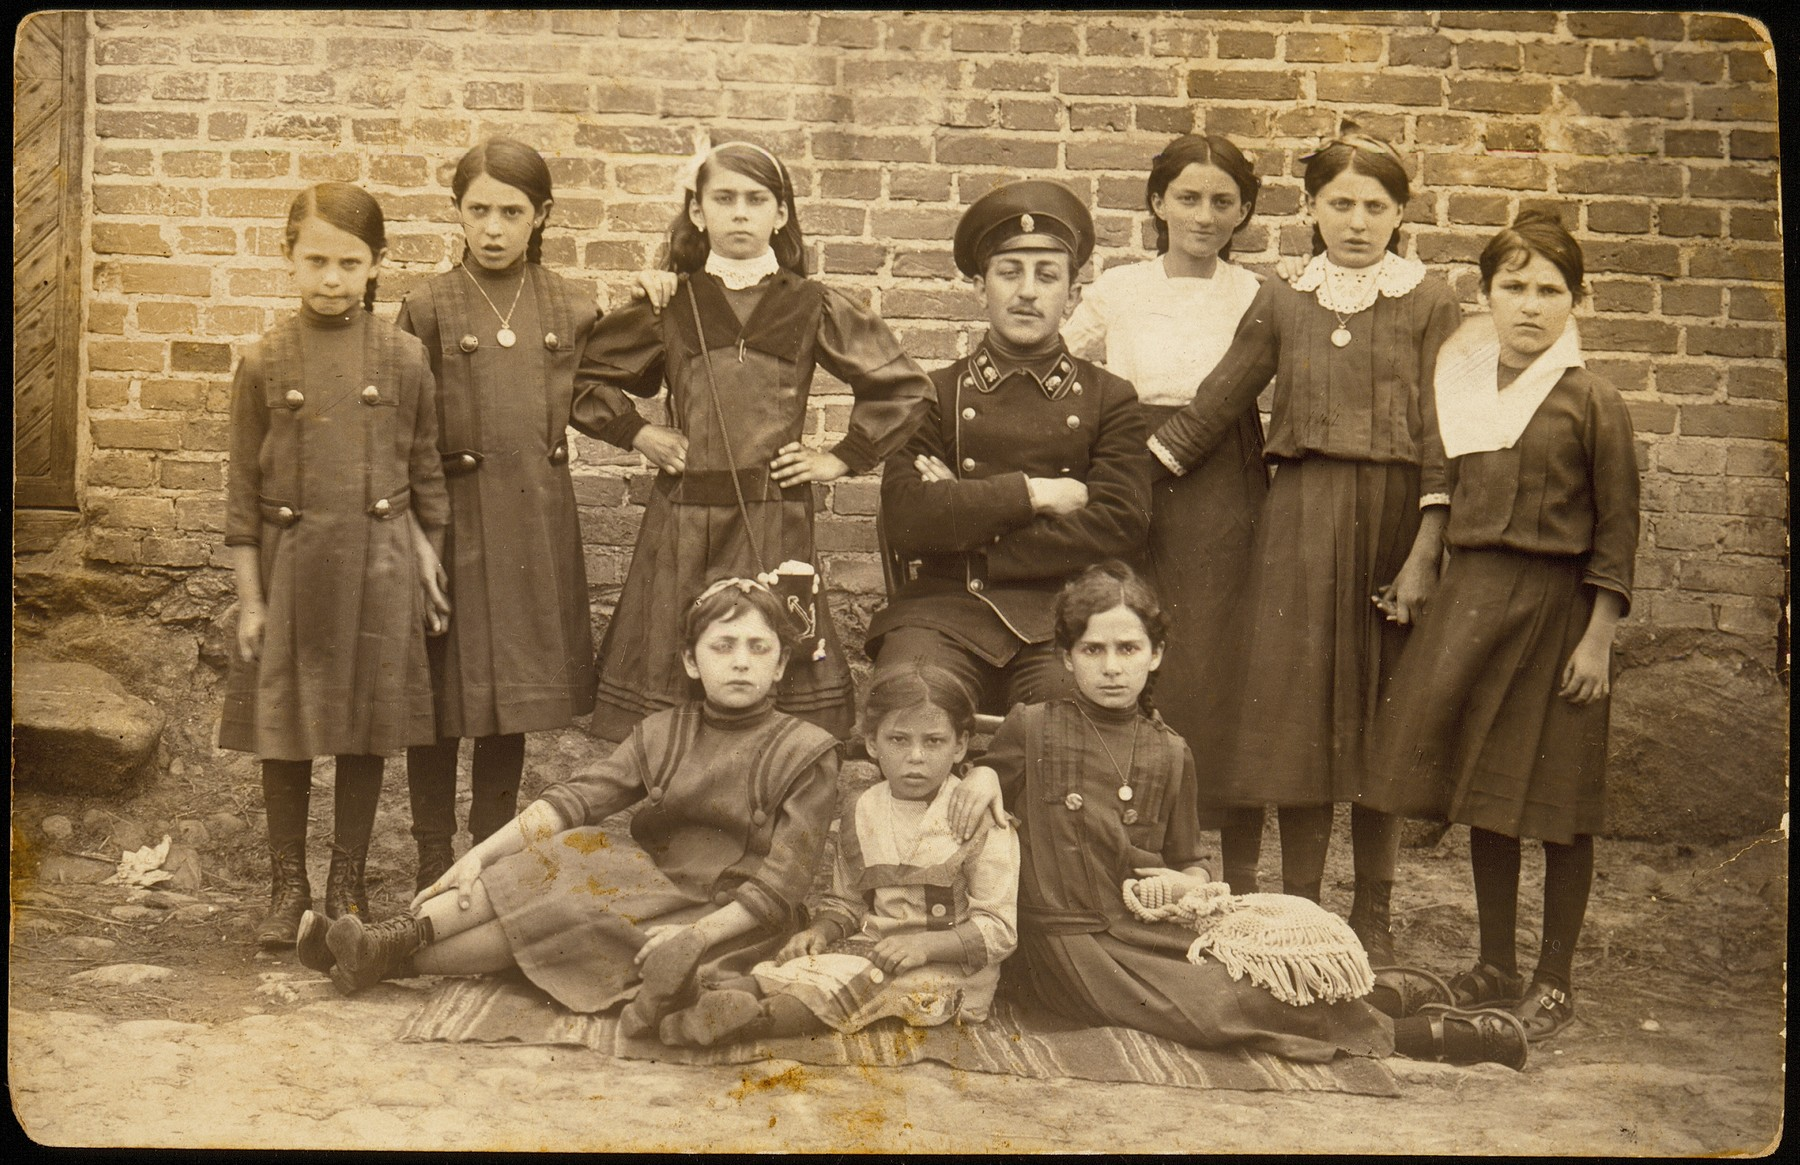 Students in the first girls school in Eisiskes which opened at the turn of the twentieth century.   Among the girls in the photo are the four Glombocki sisters.  Two are standing on the left, one is sitting on the ground, far right.  Next to Ettl Glombocki (Ginsberg) standing second and fourth from right are the Kiuchefski sisters.  First girl to the right is Itka Nochomowicz; third from right is Hinda Sonenson.  Top row (on far right) is Dubraska Peretz .   A number of the Glombockis immigrated to Argentina.  Ettl survived in Russia, Hinda was murdered with her four children in the September 1941 massacre.